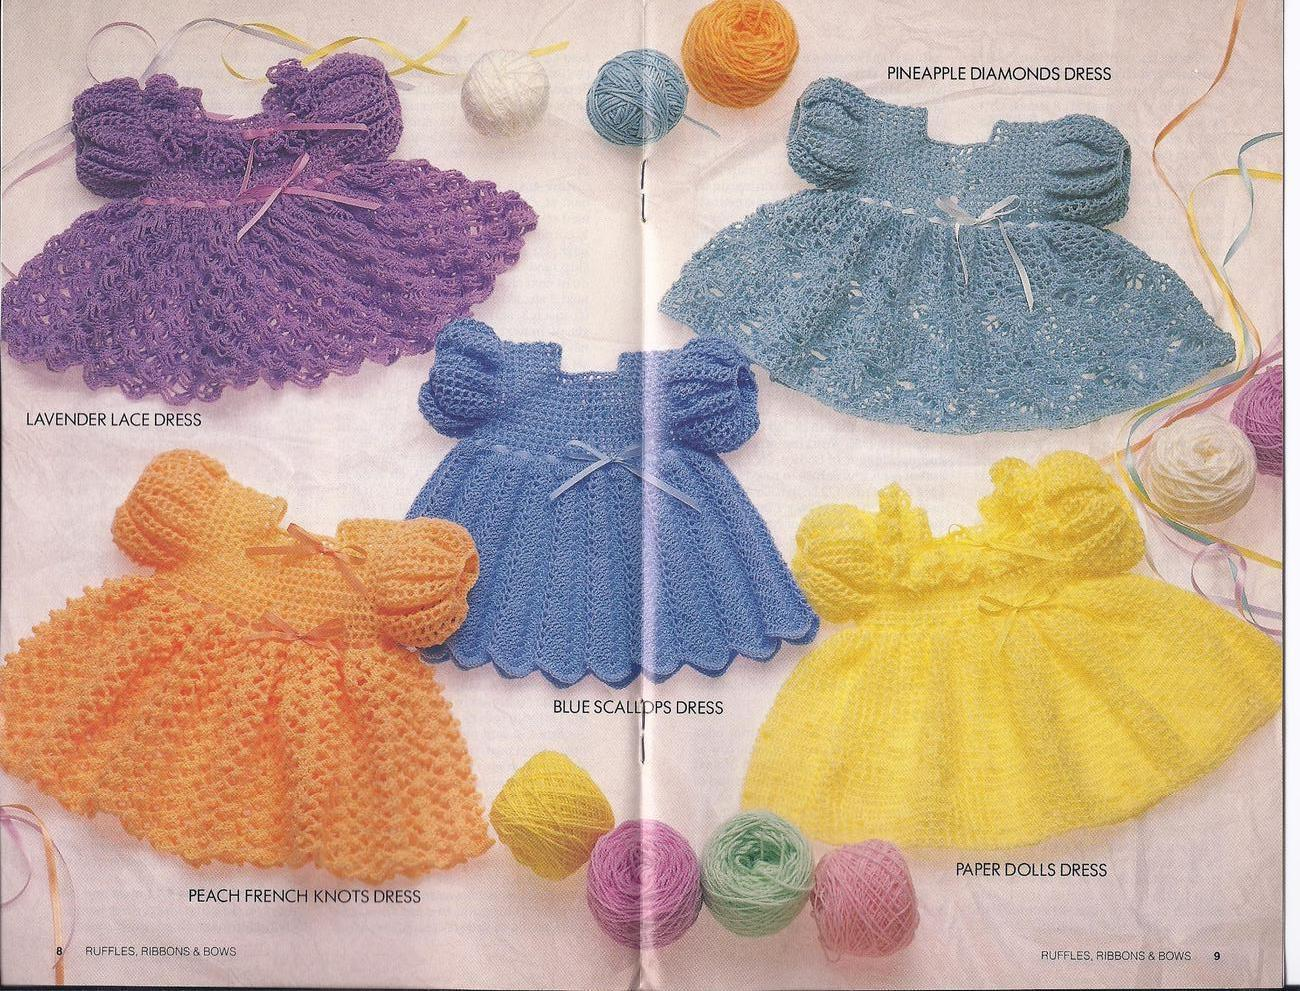 Ruffles ribbons bows baby dresses crochet and 50 similar items bankloansurffo Choice Image